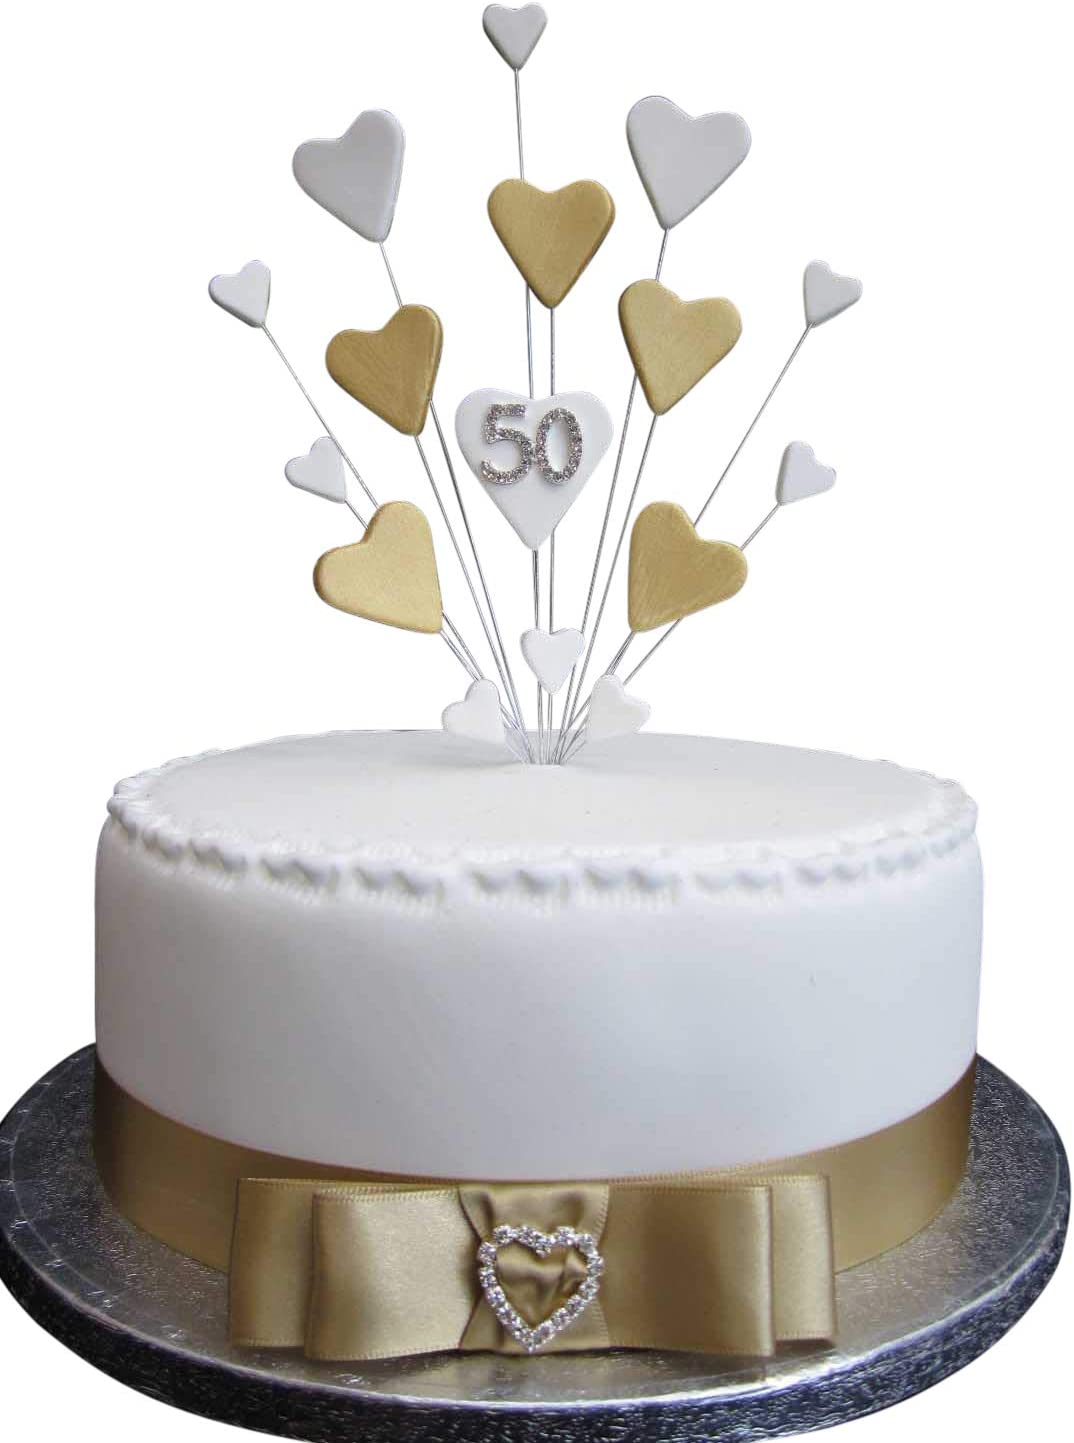 50th Golden Wedding Anniversary Birthday Cake Topper Ideal For A 20cm Cake Plus 1 X Metre 25mm Gold Coloured Satin Ribbon With Bow And Heart Diamante Buckle Amazon Co Uk Kitchen Home